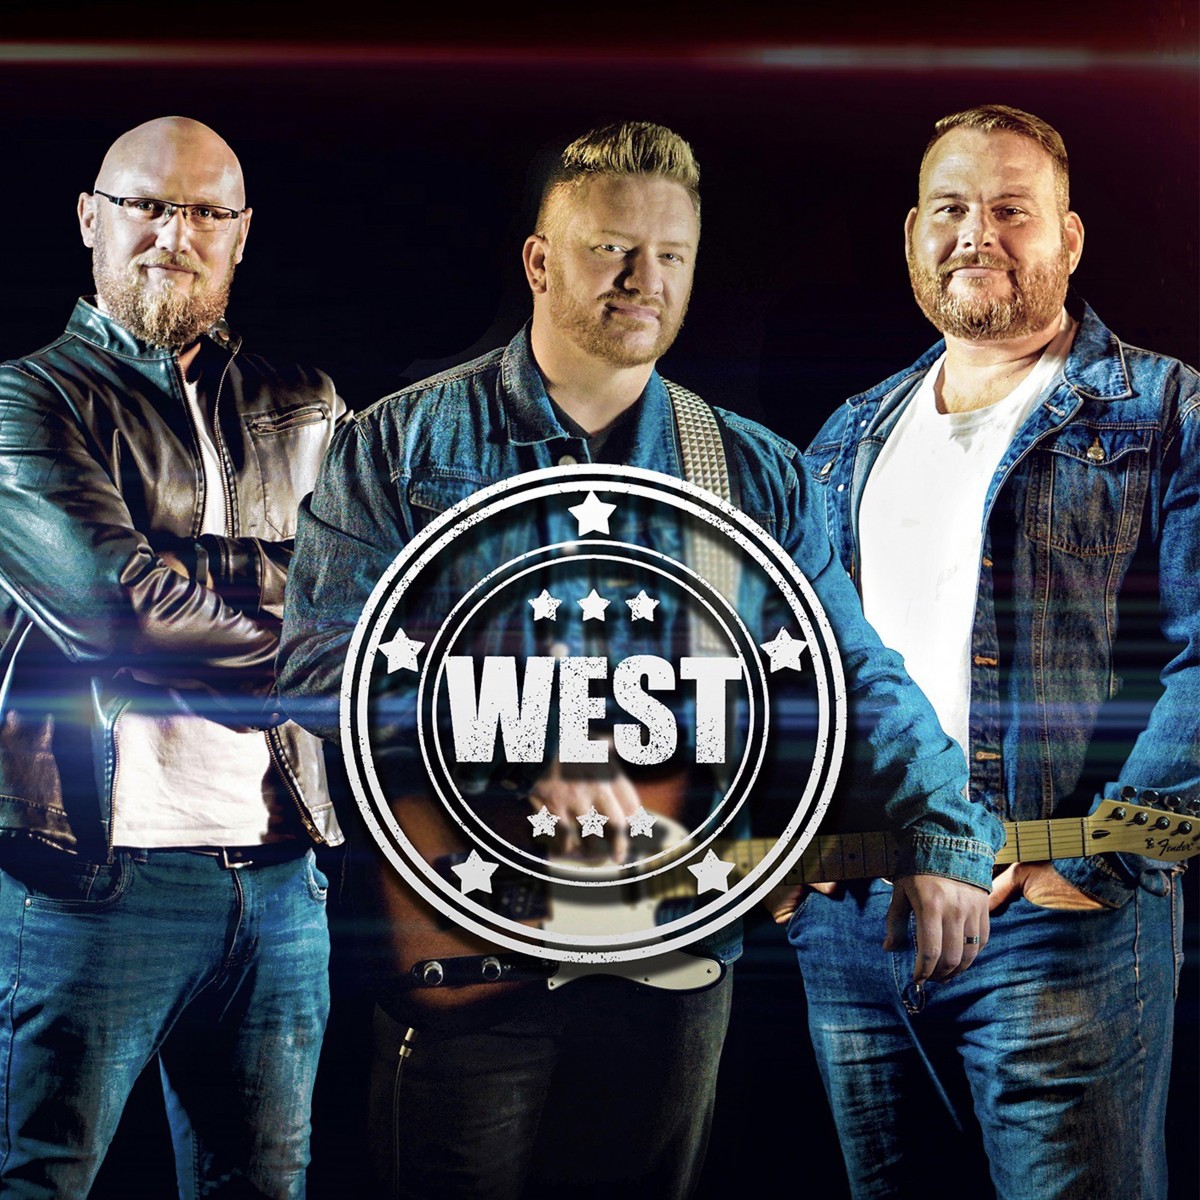 West - West CD - CDEBS001